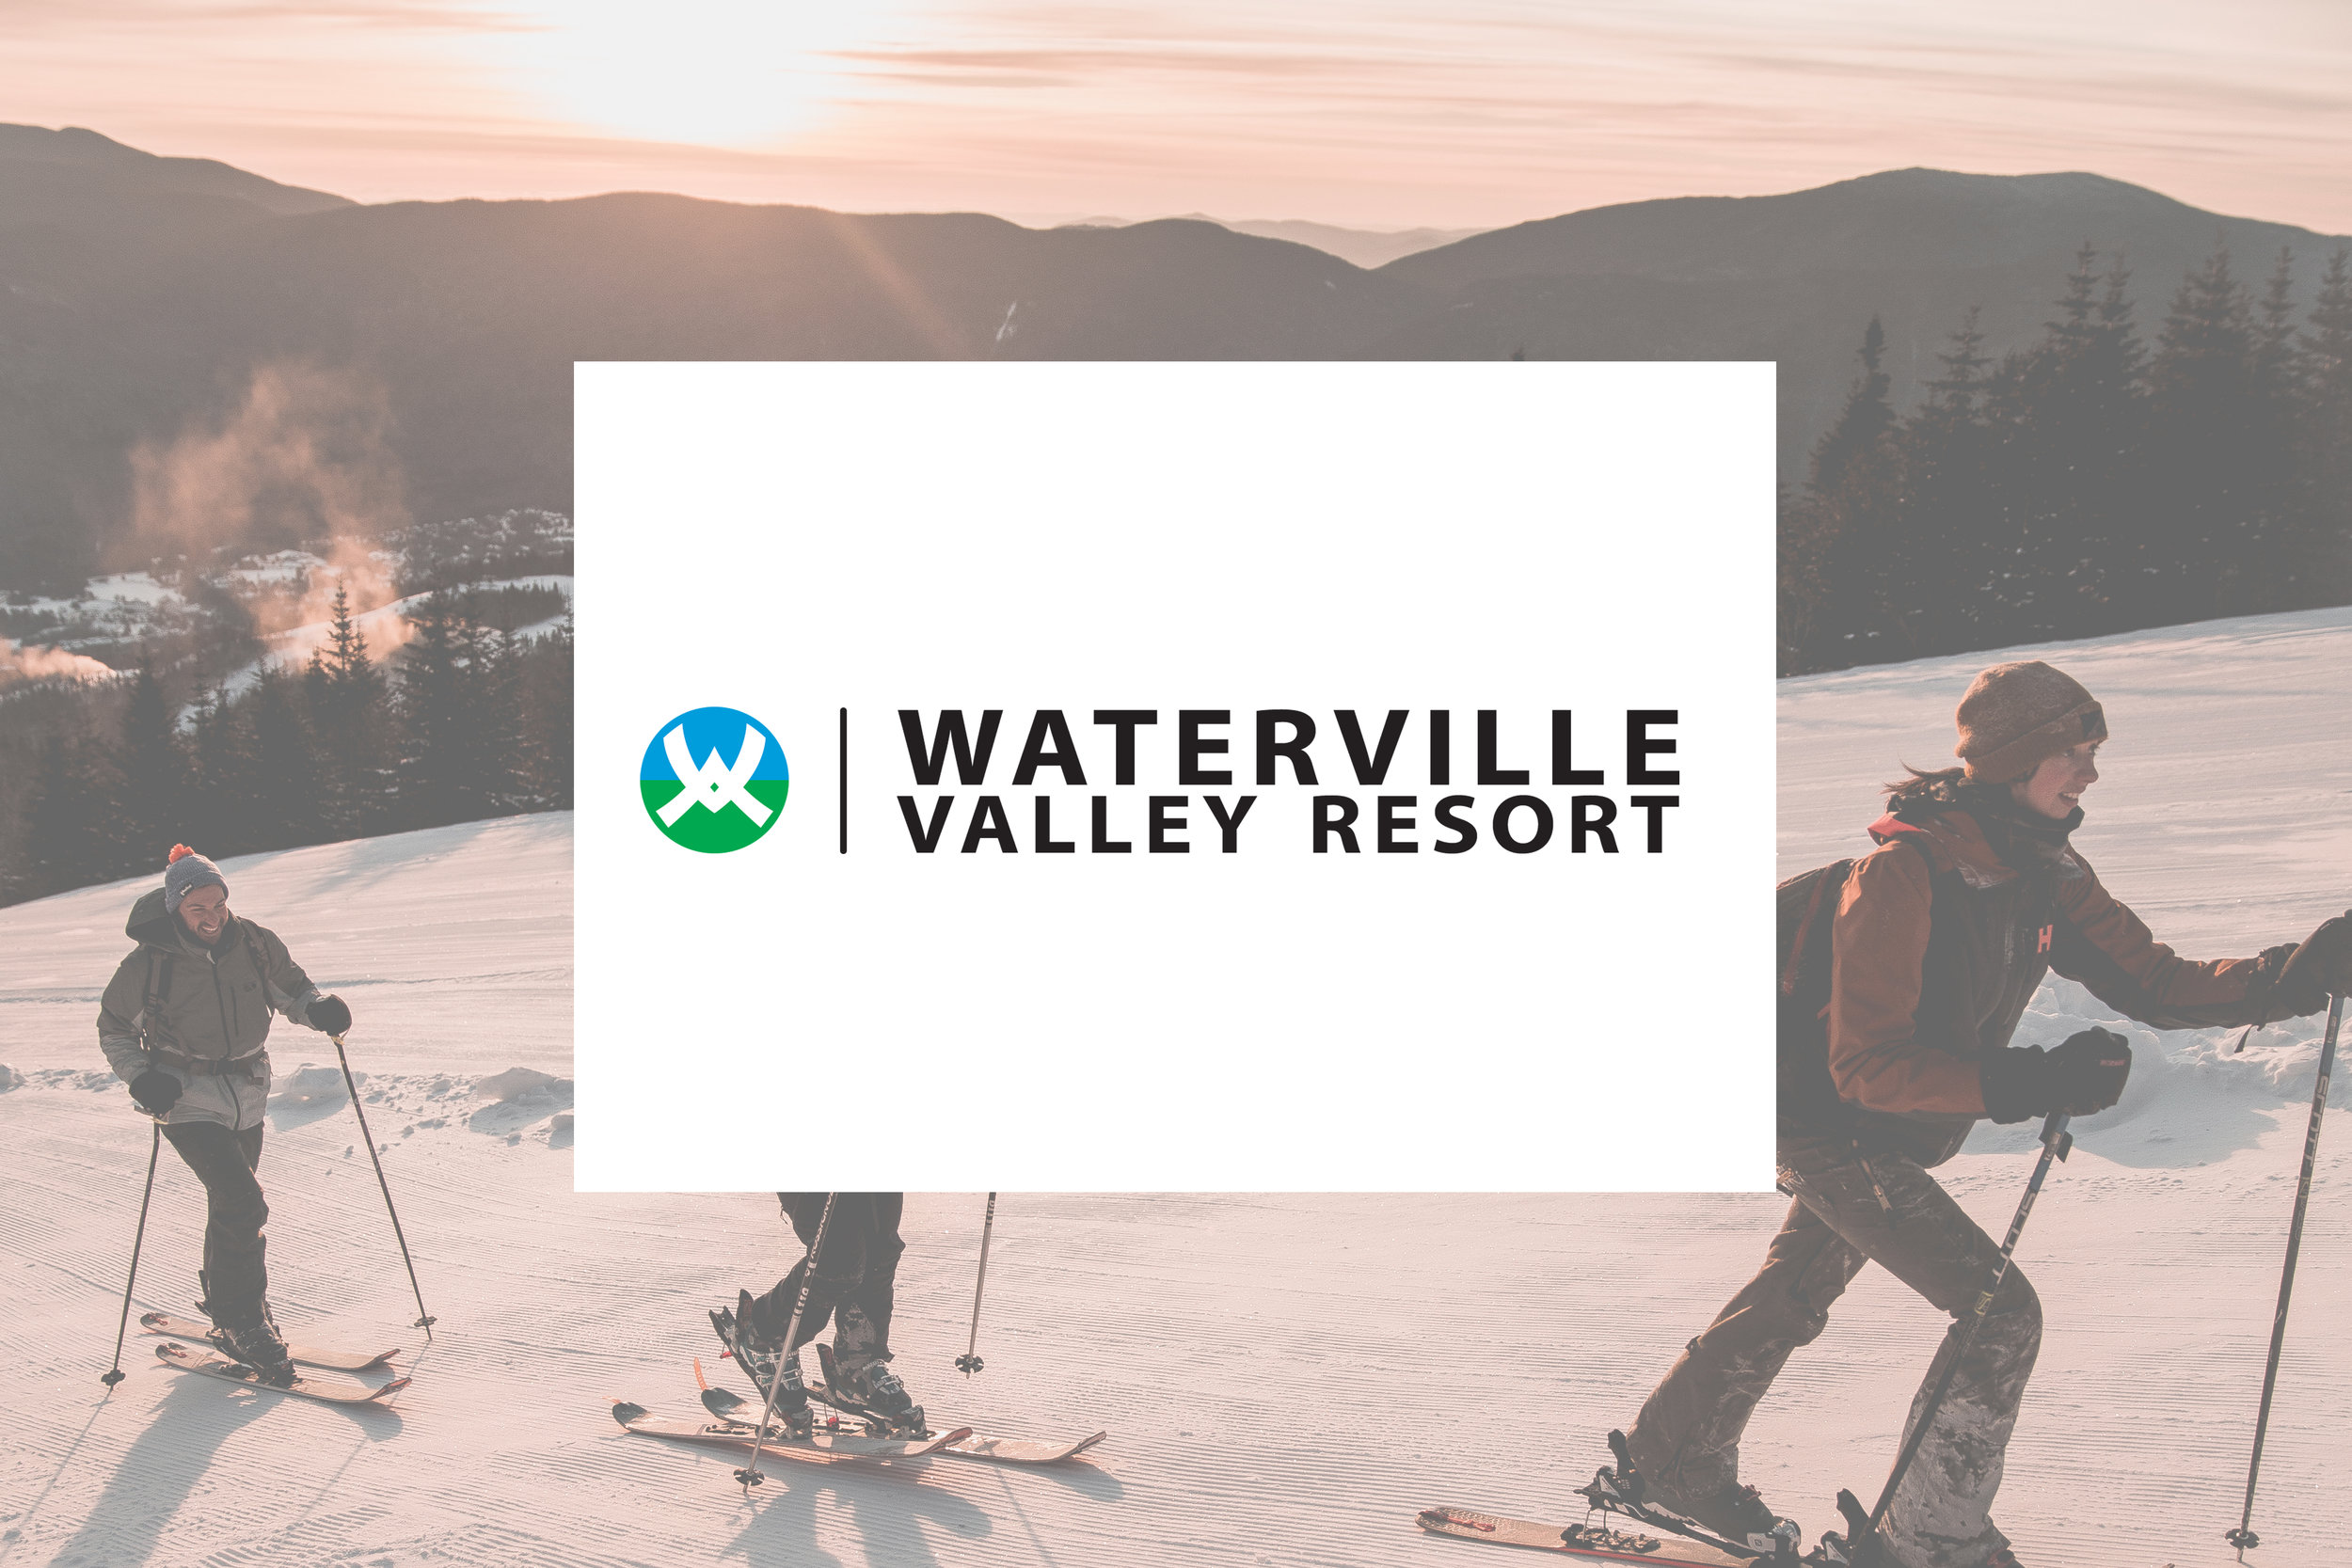 Waterville Valley Resort - Project management and content creation showcasing skiable wilderness access and new backcountry programming for resort's website and social channels